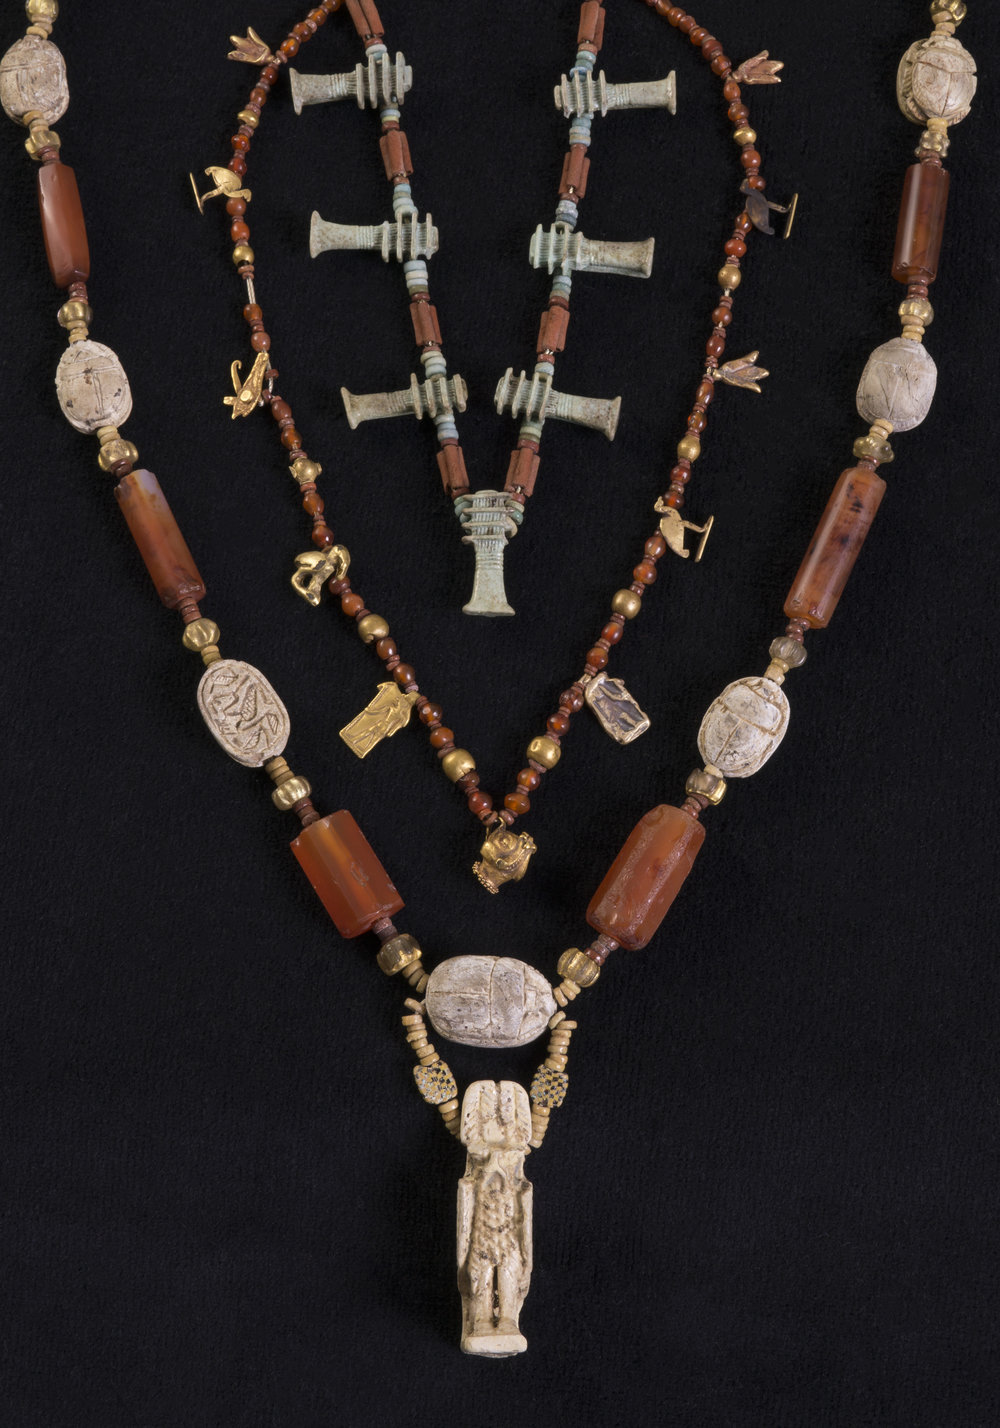 Egyptian necklaces2.jpg